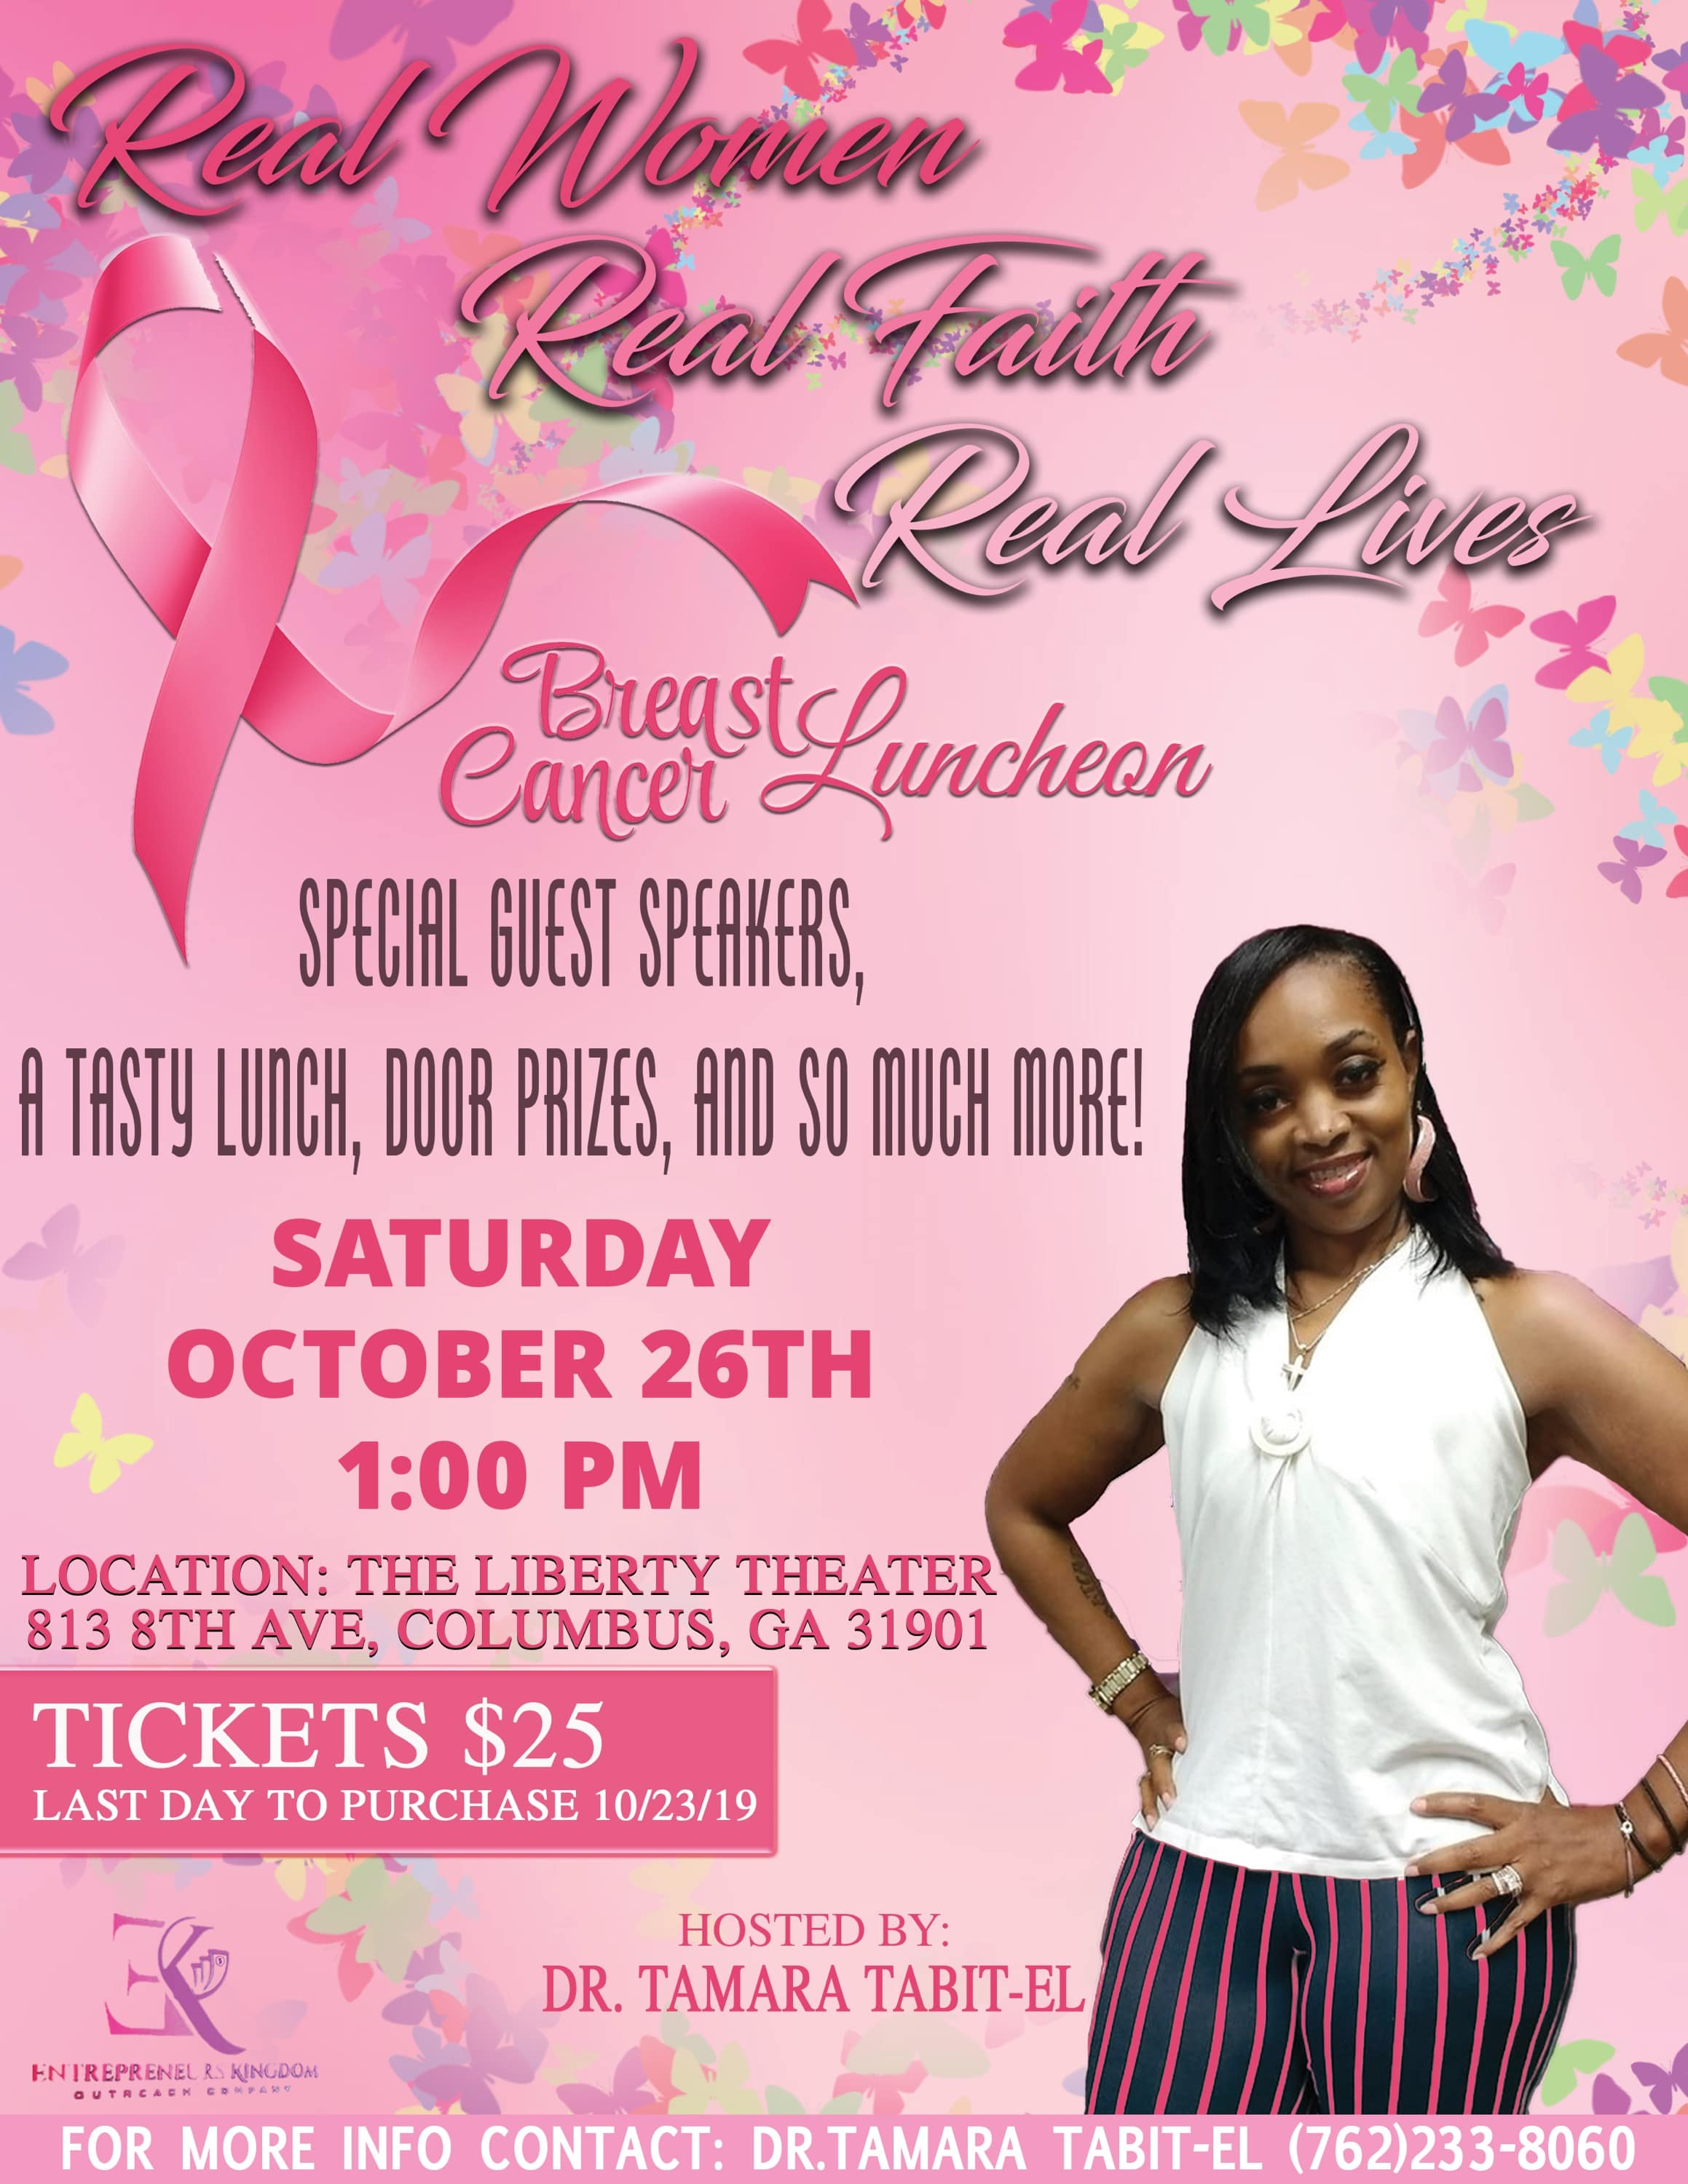 Real Women Real Faith Real Lives Breast Cancer Luncheon